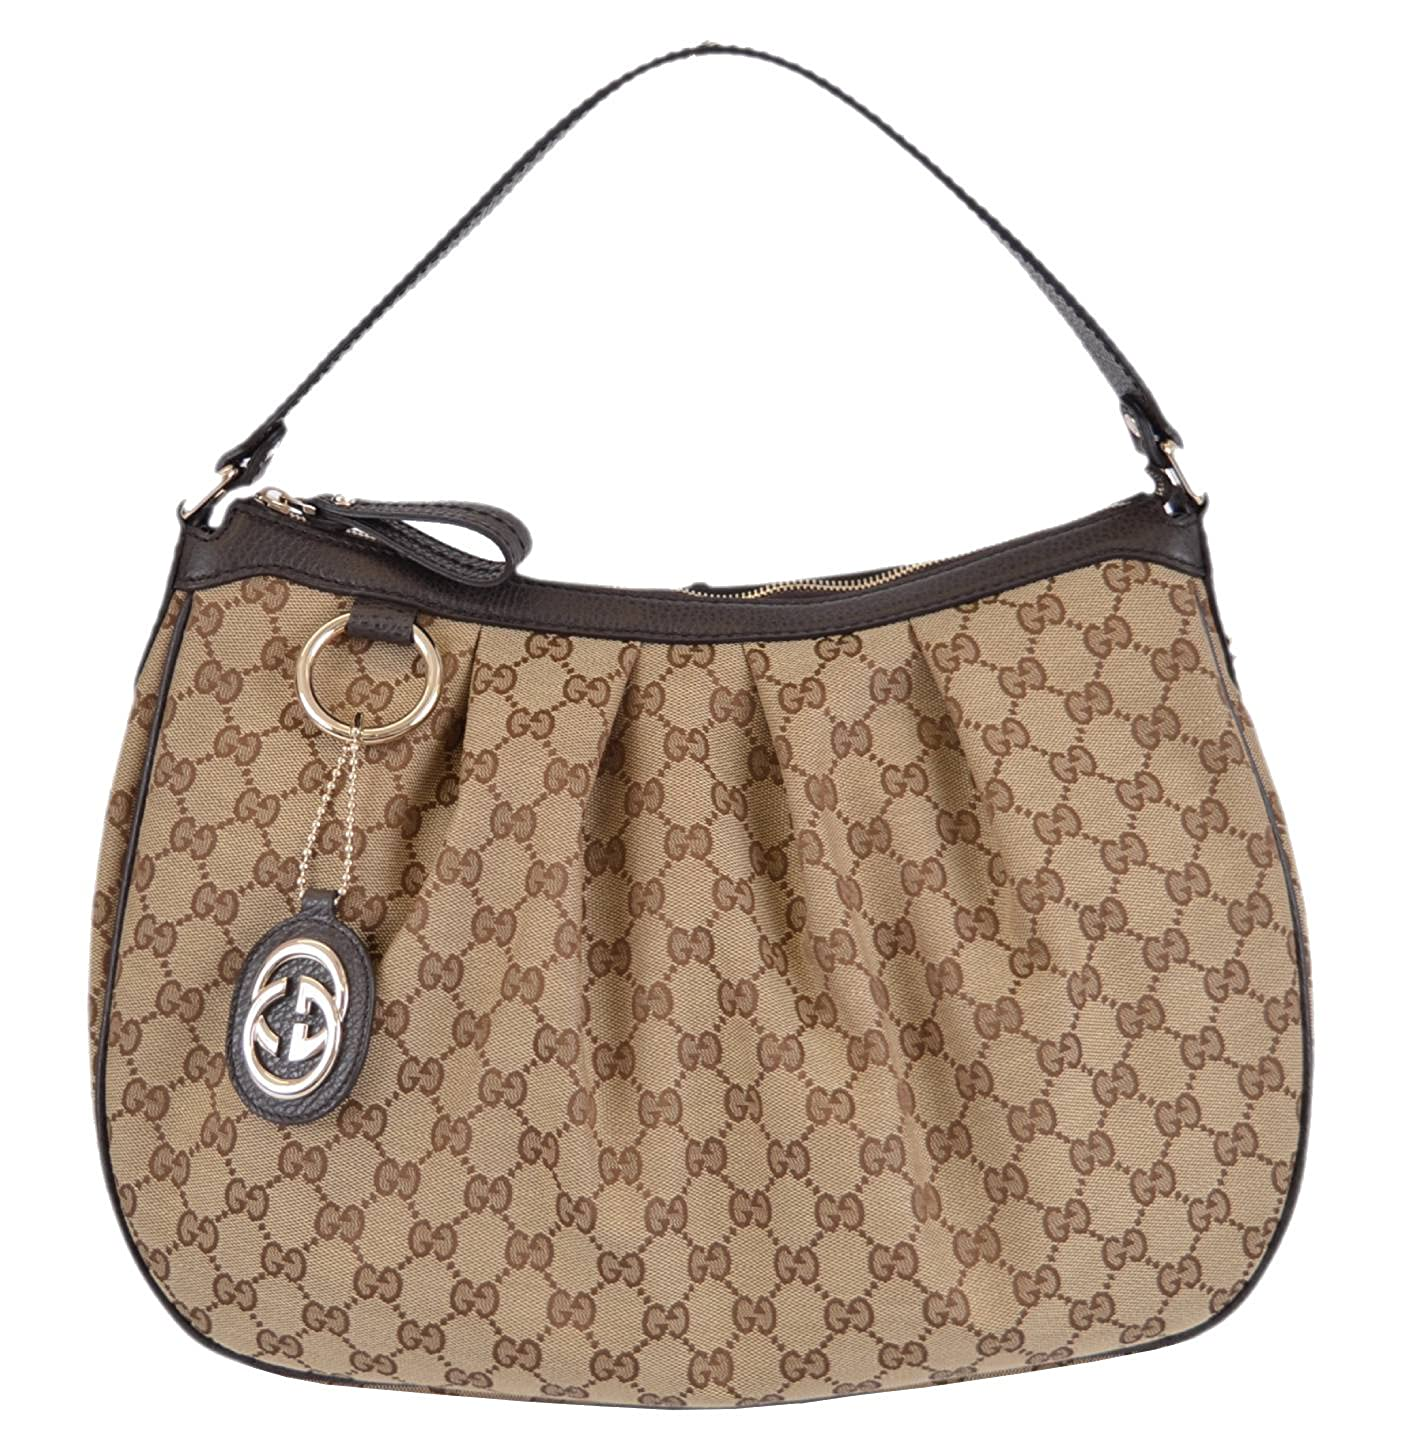 c1df0126090 Amazon.com  Gucci 364843 Women s Brown Canvas GG Charm Guccissima Sukey  Purse  Shoes